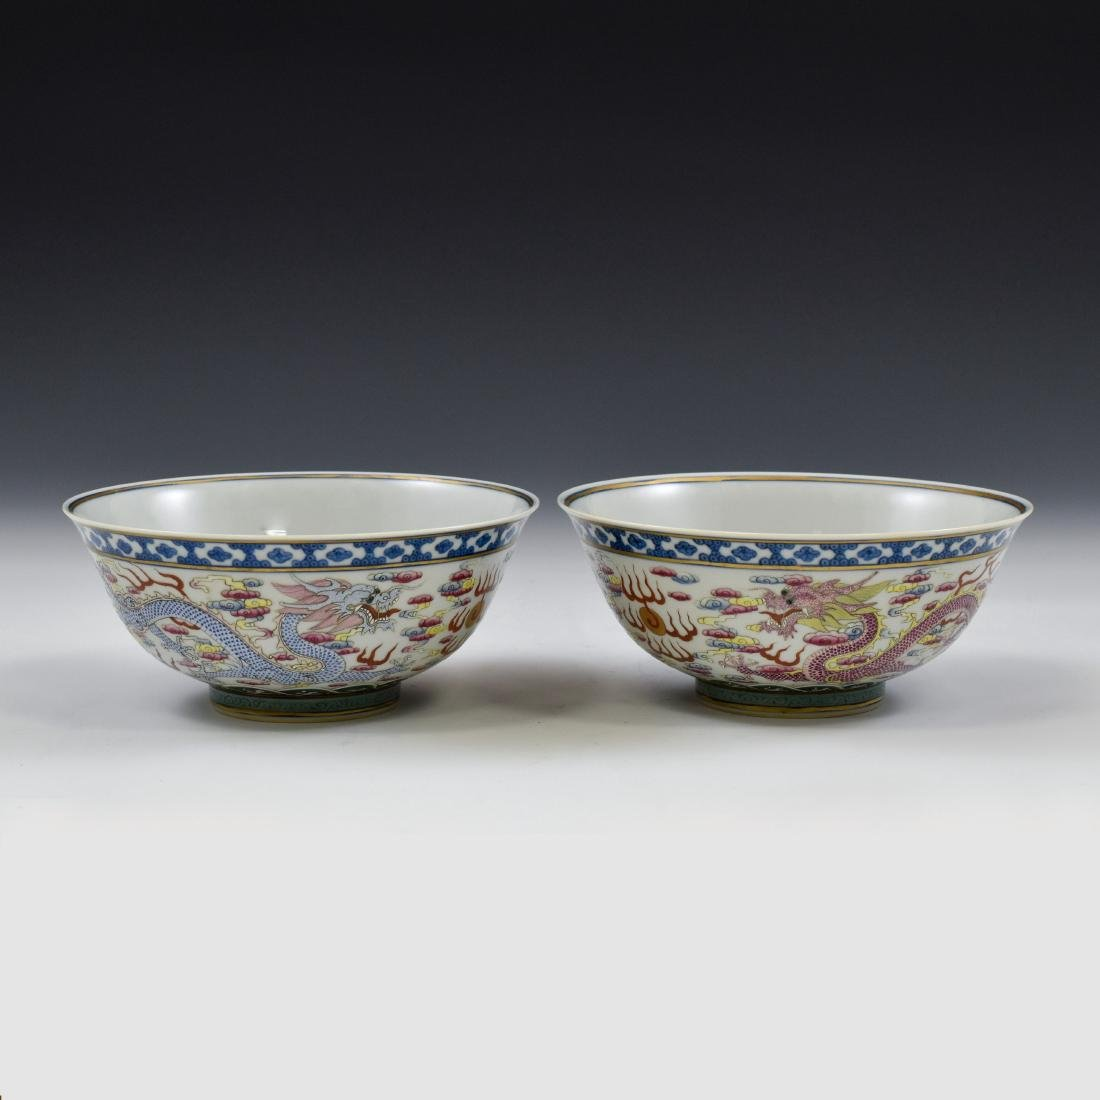 PAIR OF FAMILLE ROSE DRAGON BOWLS